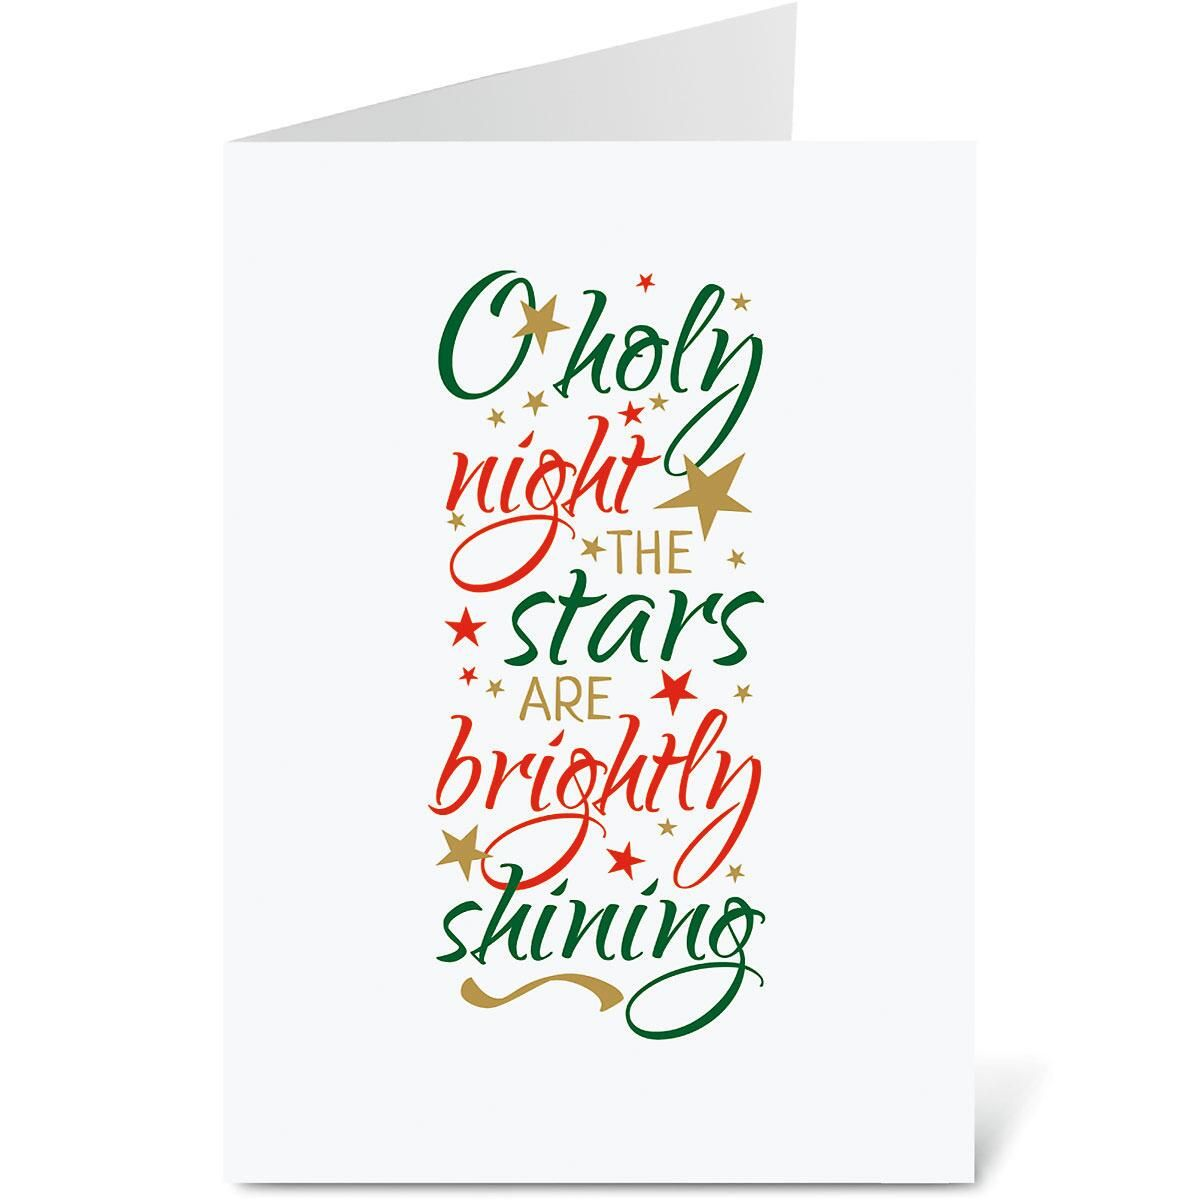 O Holy Night Nonpersonalized Christmas Cards - Set of 72